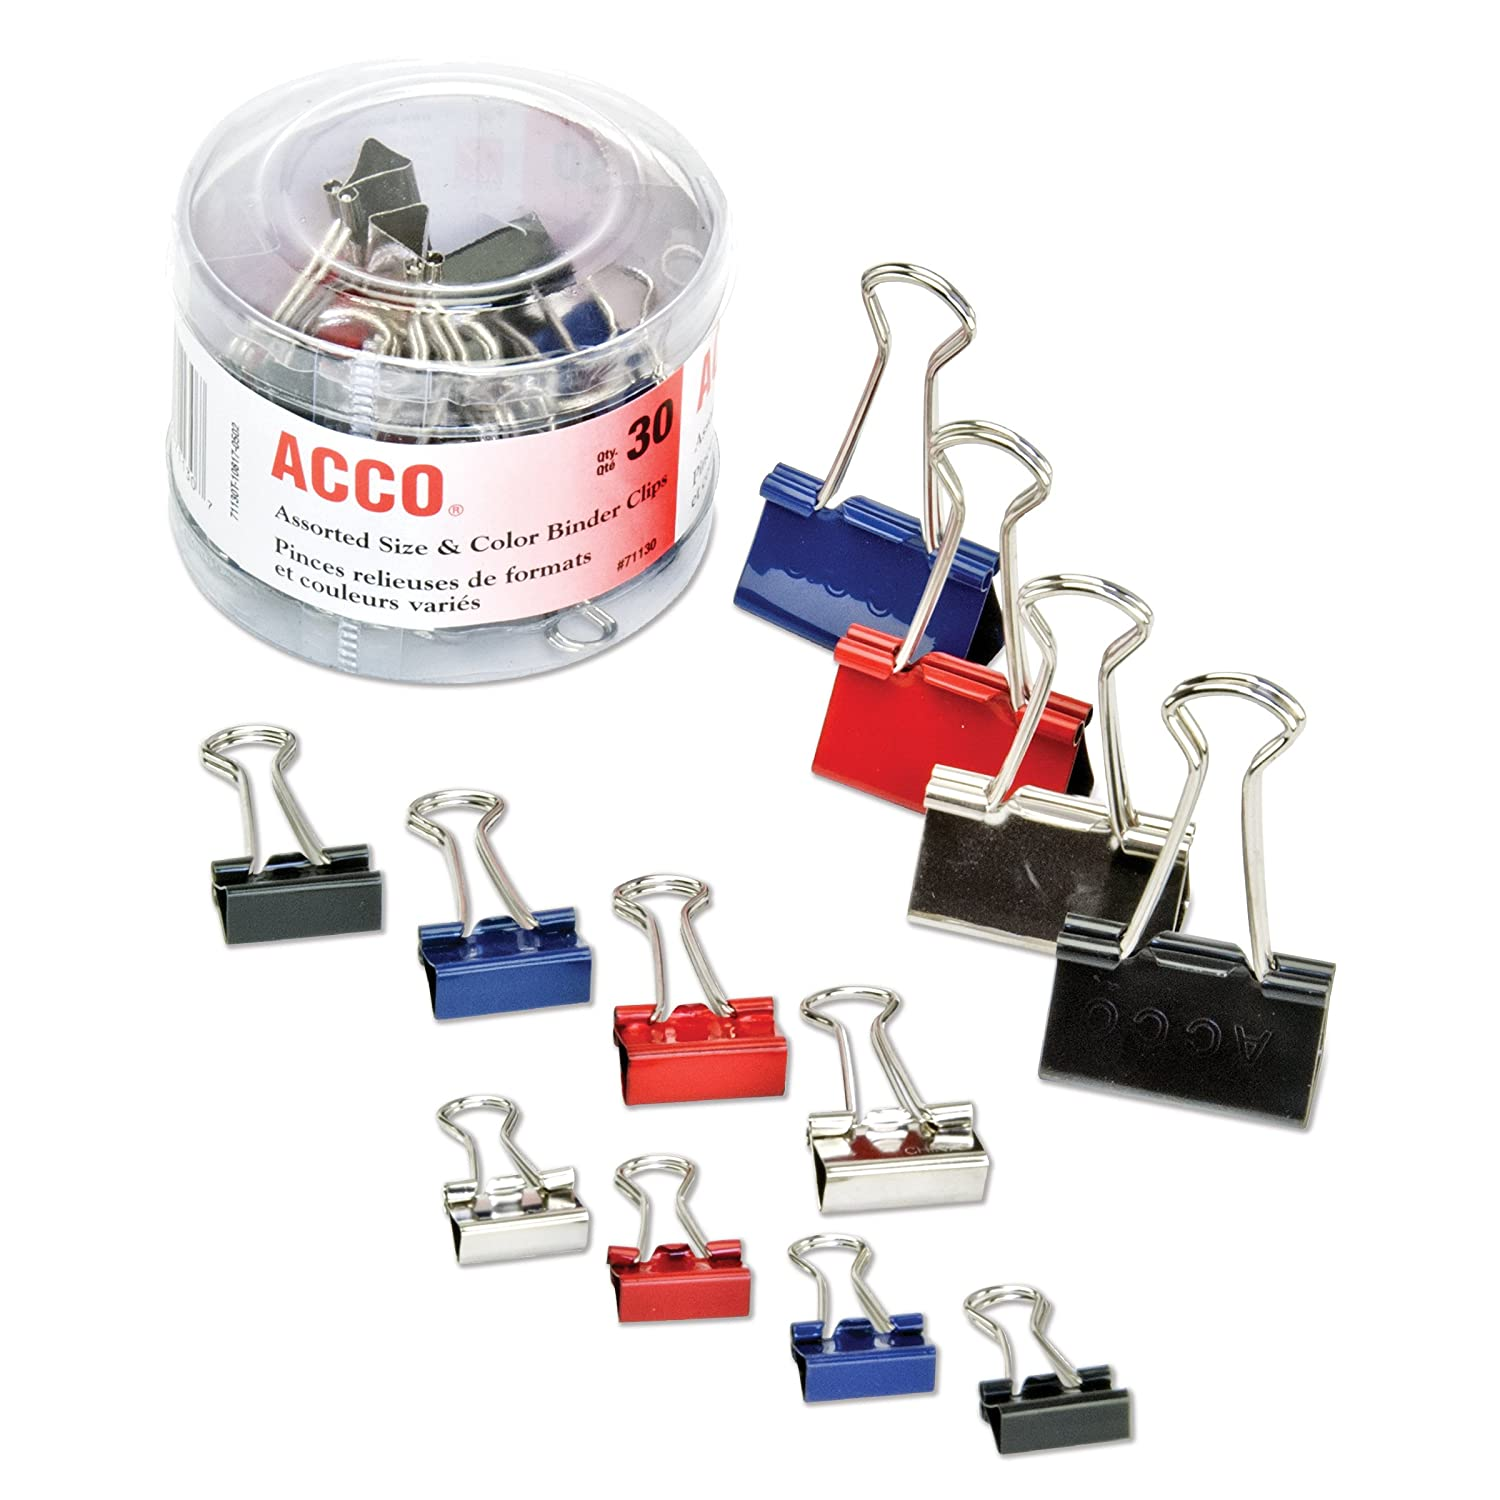 Binder Clips in Soft Tub, Assorted Sizes, Colors, Sold as 1 Package ACCO Brands Corporation A7071130